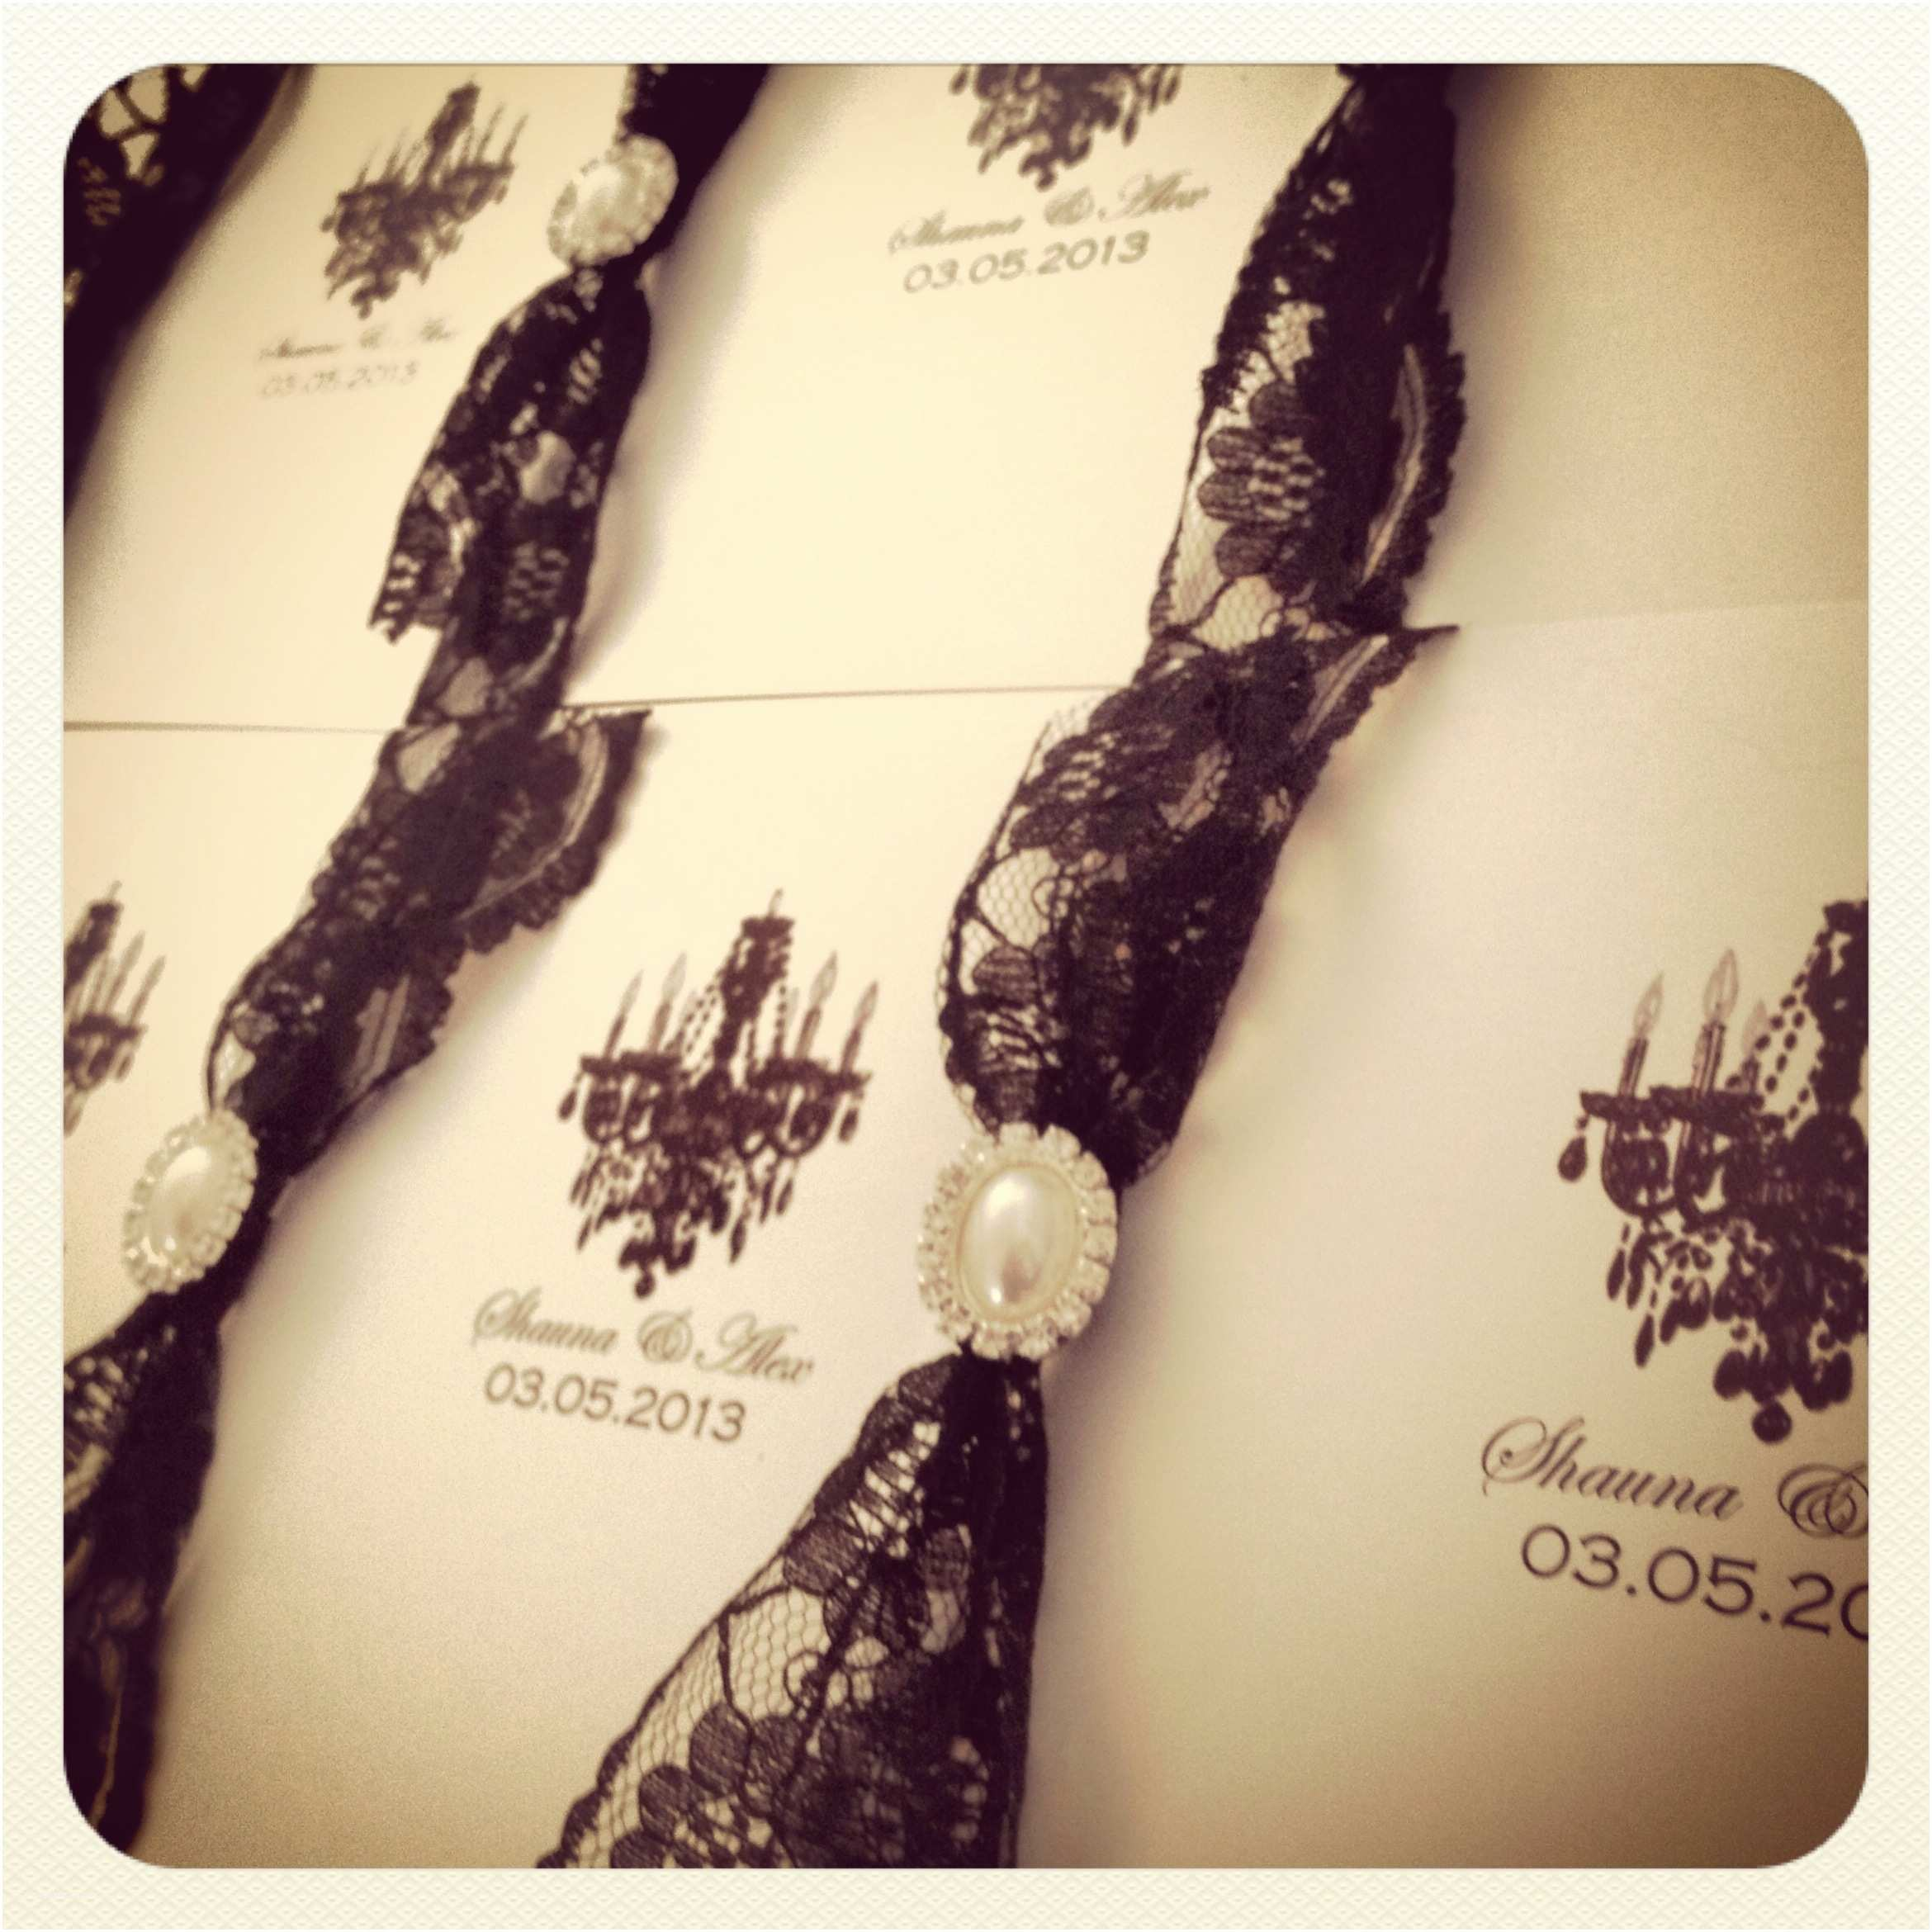 Vintage Style Wedding Invitations the 20's Roar Again Great Gatsby Inspired Wedding